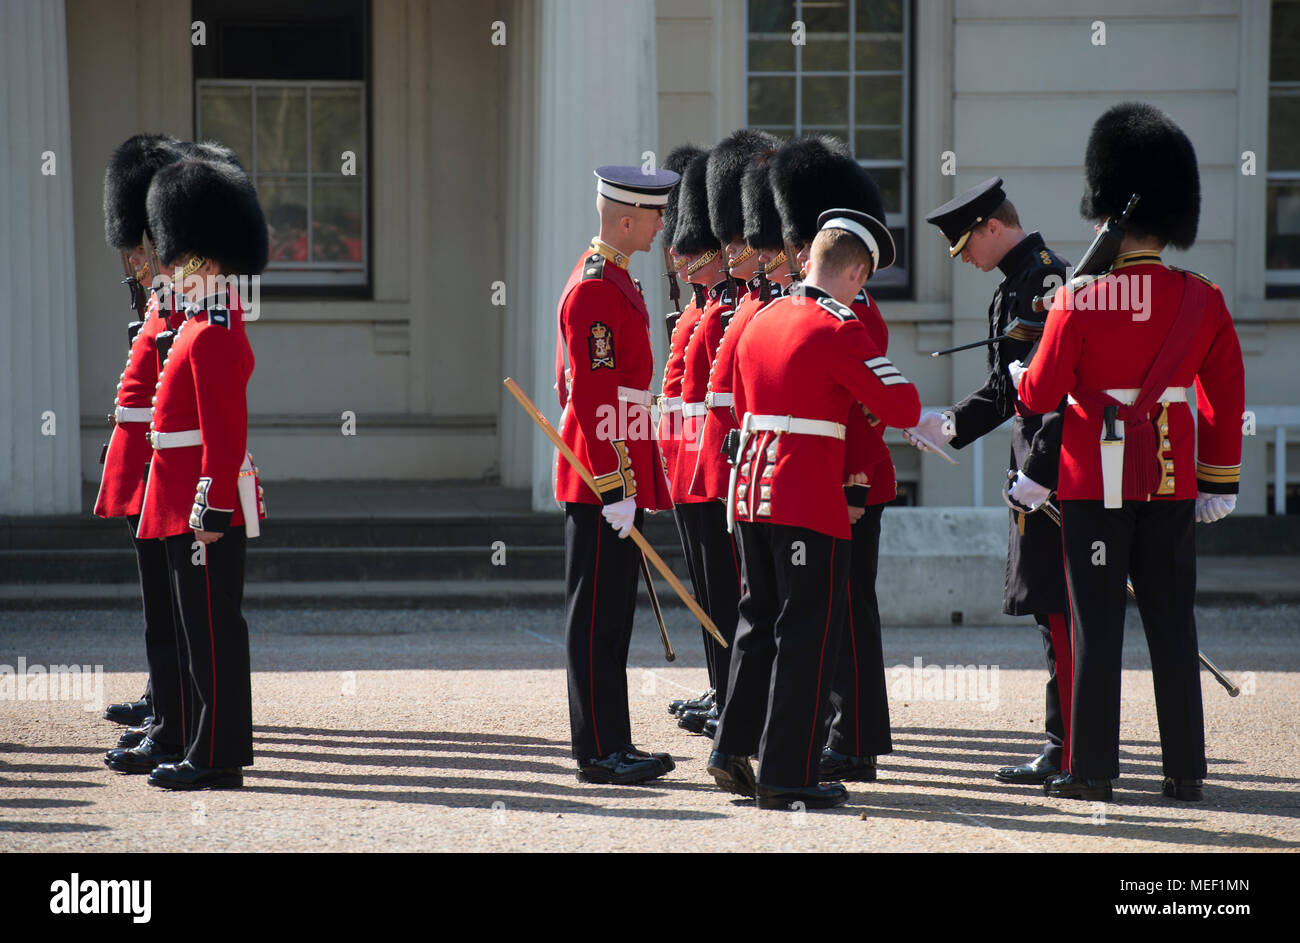 Daily inspection of Guardsmen at Wellington Barracks parade ground before Changing the Guard at Buckingham Palace, London, 20 April, 2018. - Stock Image